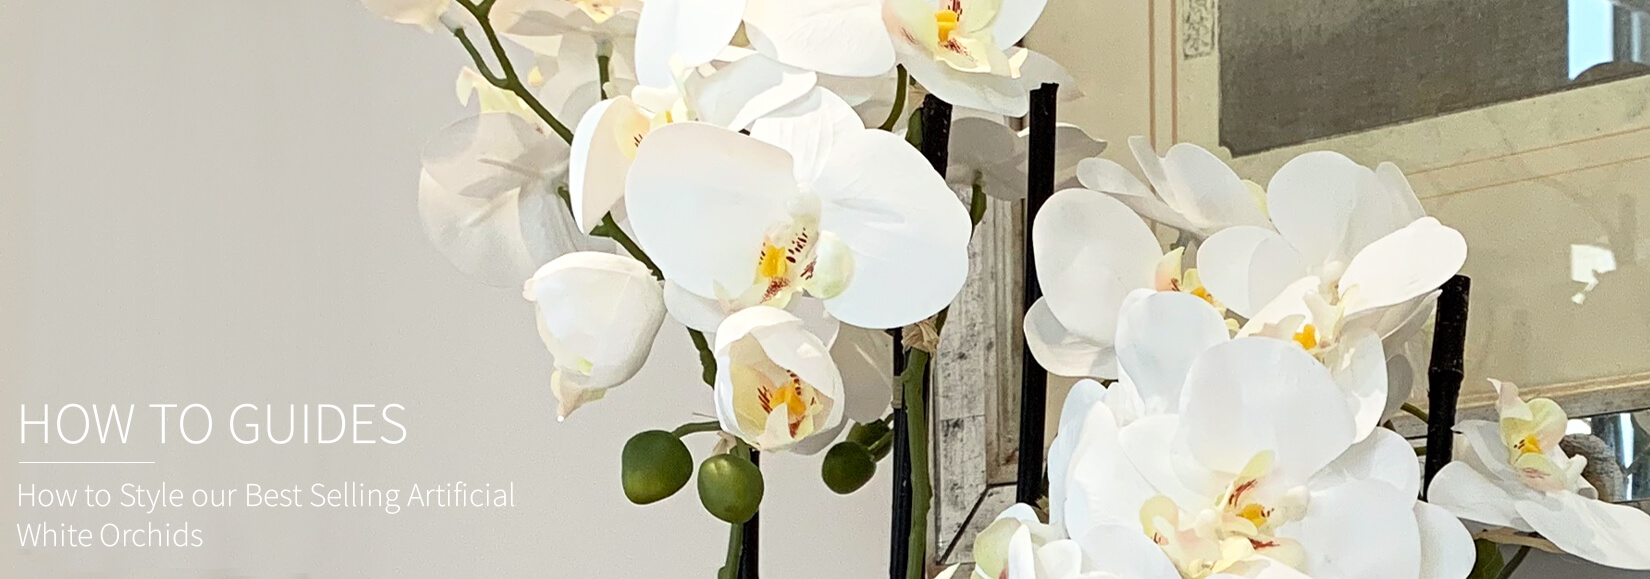 Our Best Selling Artificial White Orchid Plants And How To Style Them